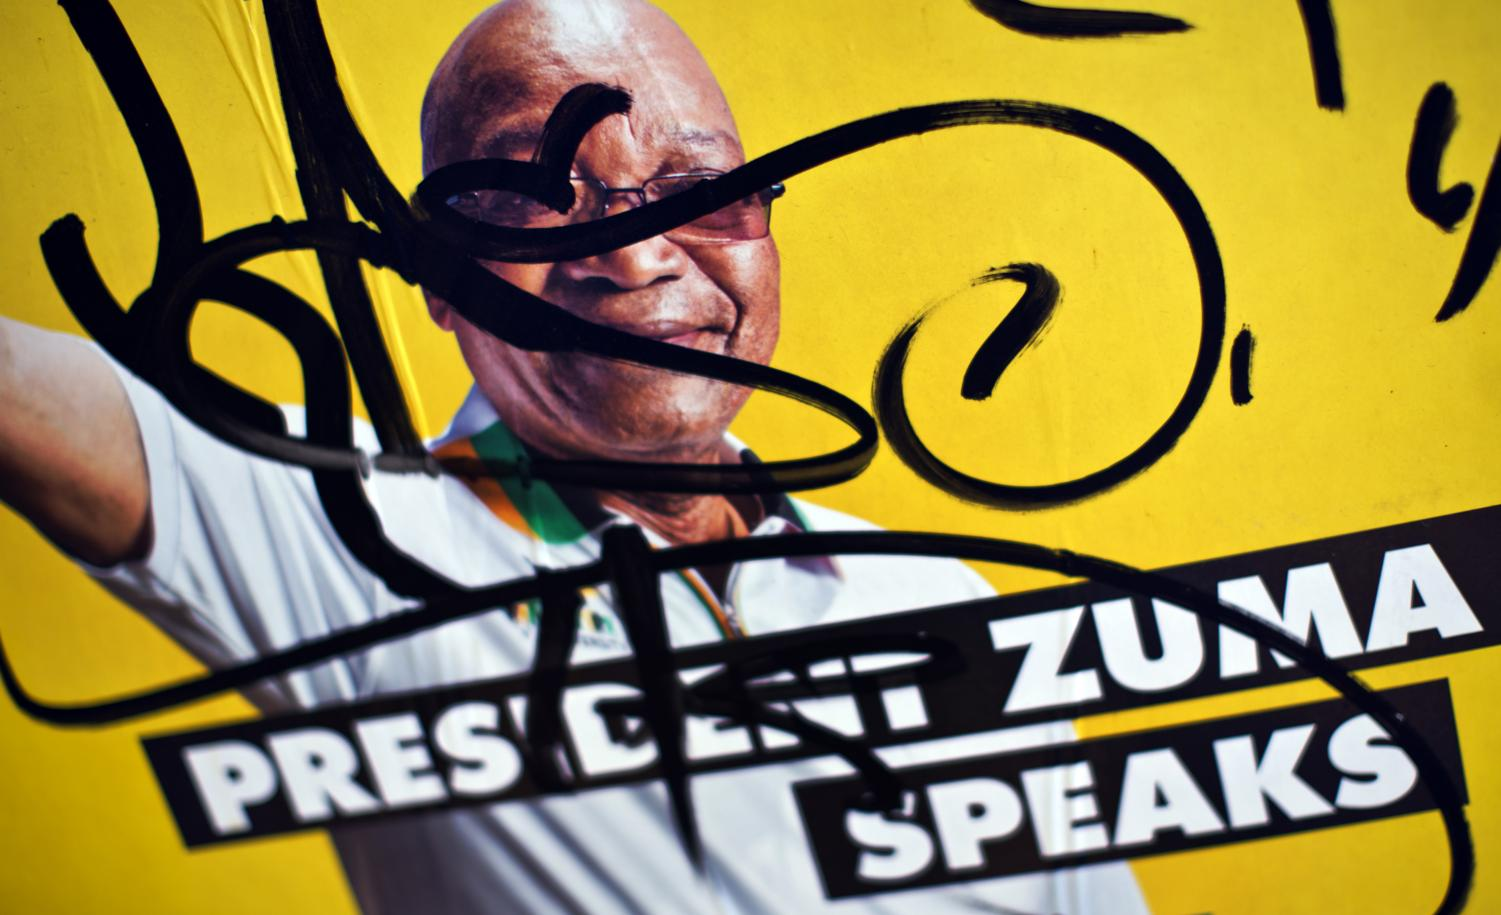 An election poster of former President Jacob Zuma is defaced in the downtown area of Johannesburg, South Africa in this May 2, 2014 photo. Zuma resigned after pressure from his party amid scandals that came up during his time in office. (Ben Curtis | Associated Press)